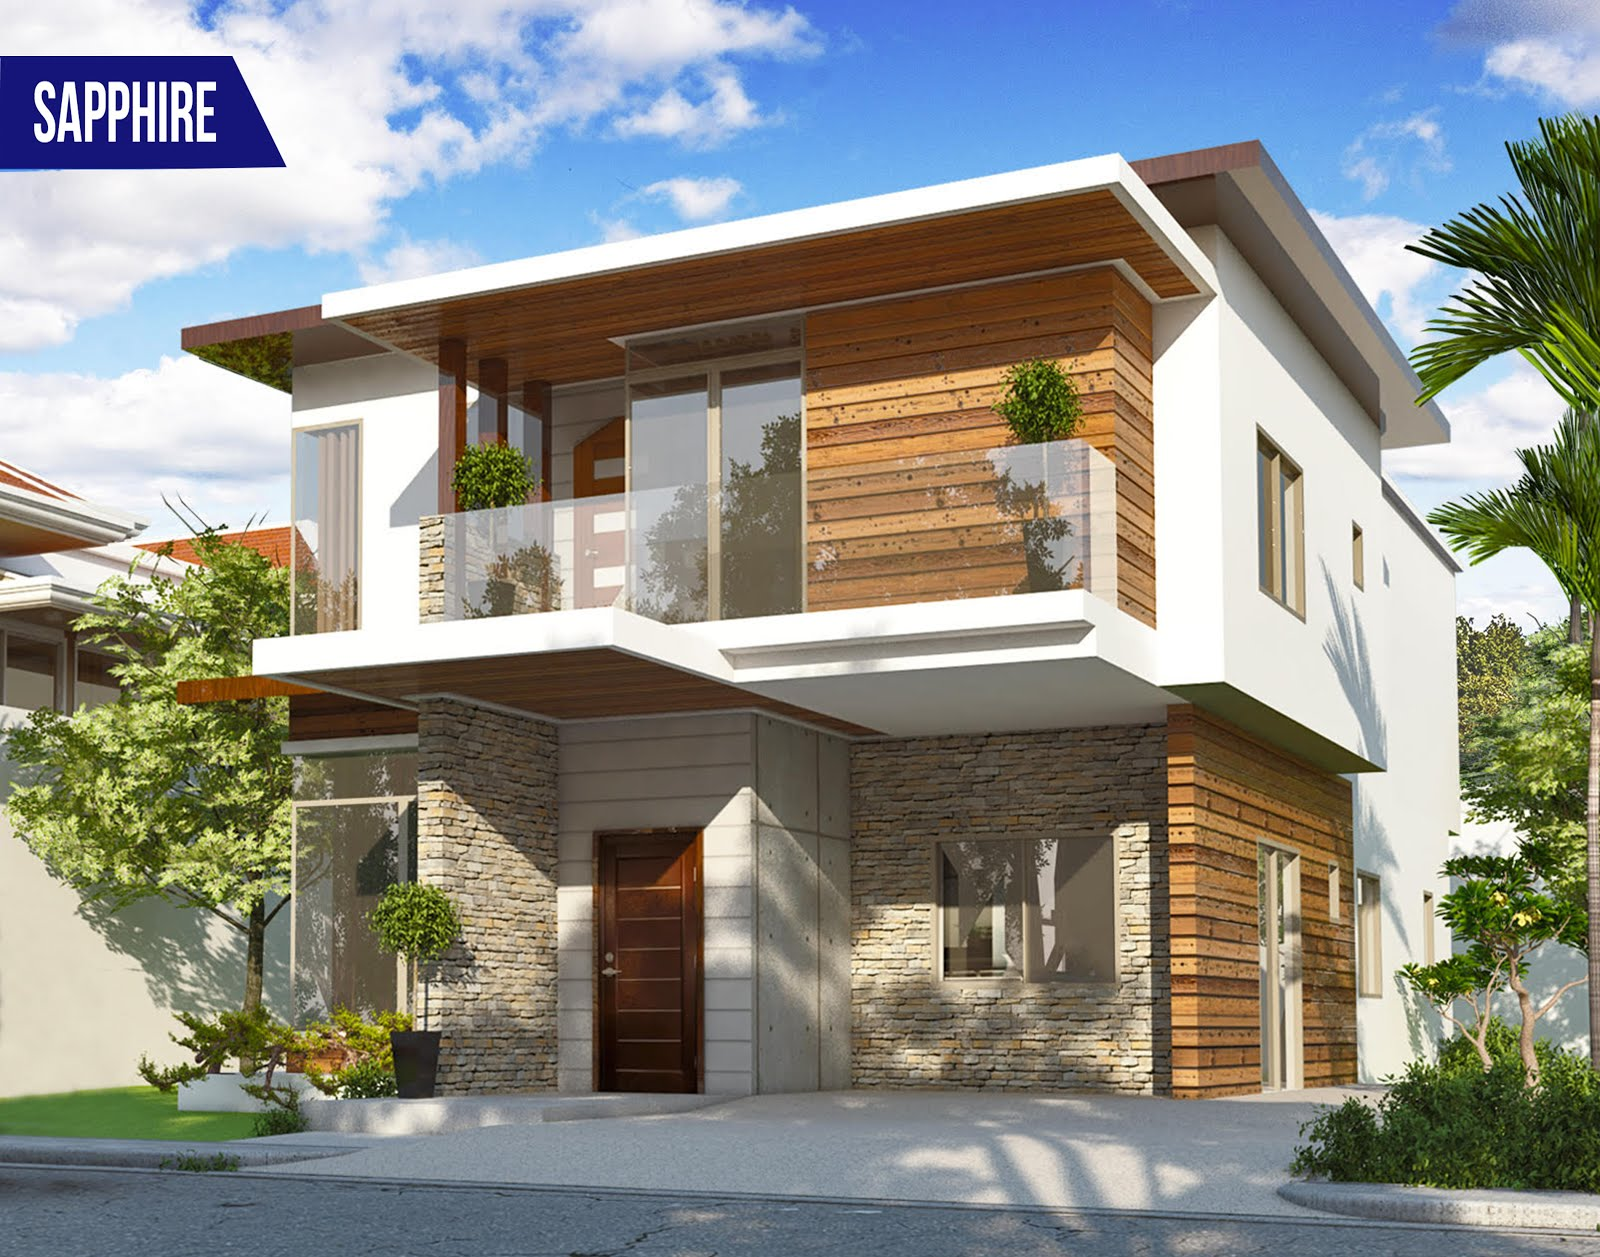 A Smart Philippine House Builder The Basics Of Latest: latest home design